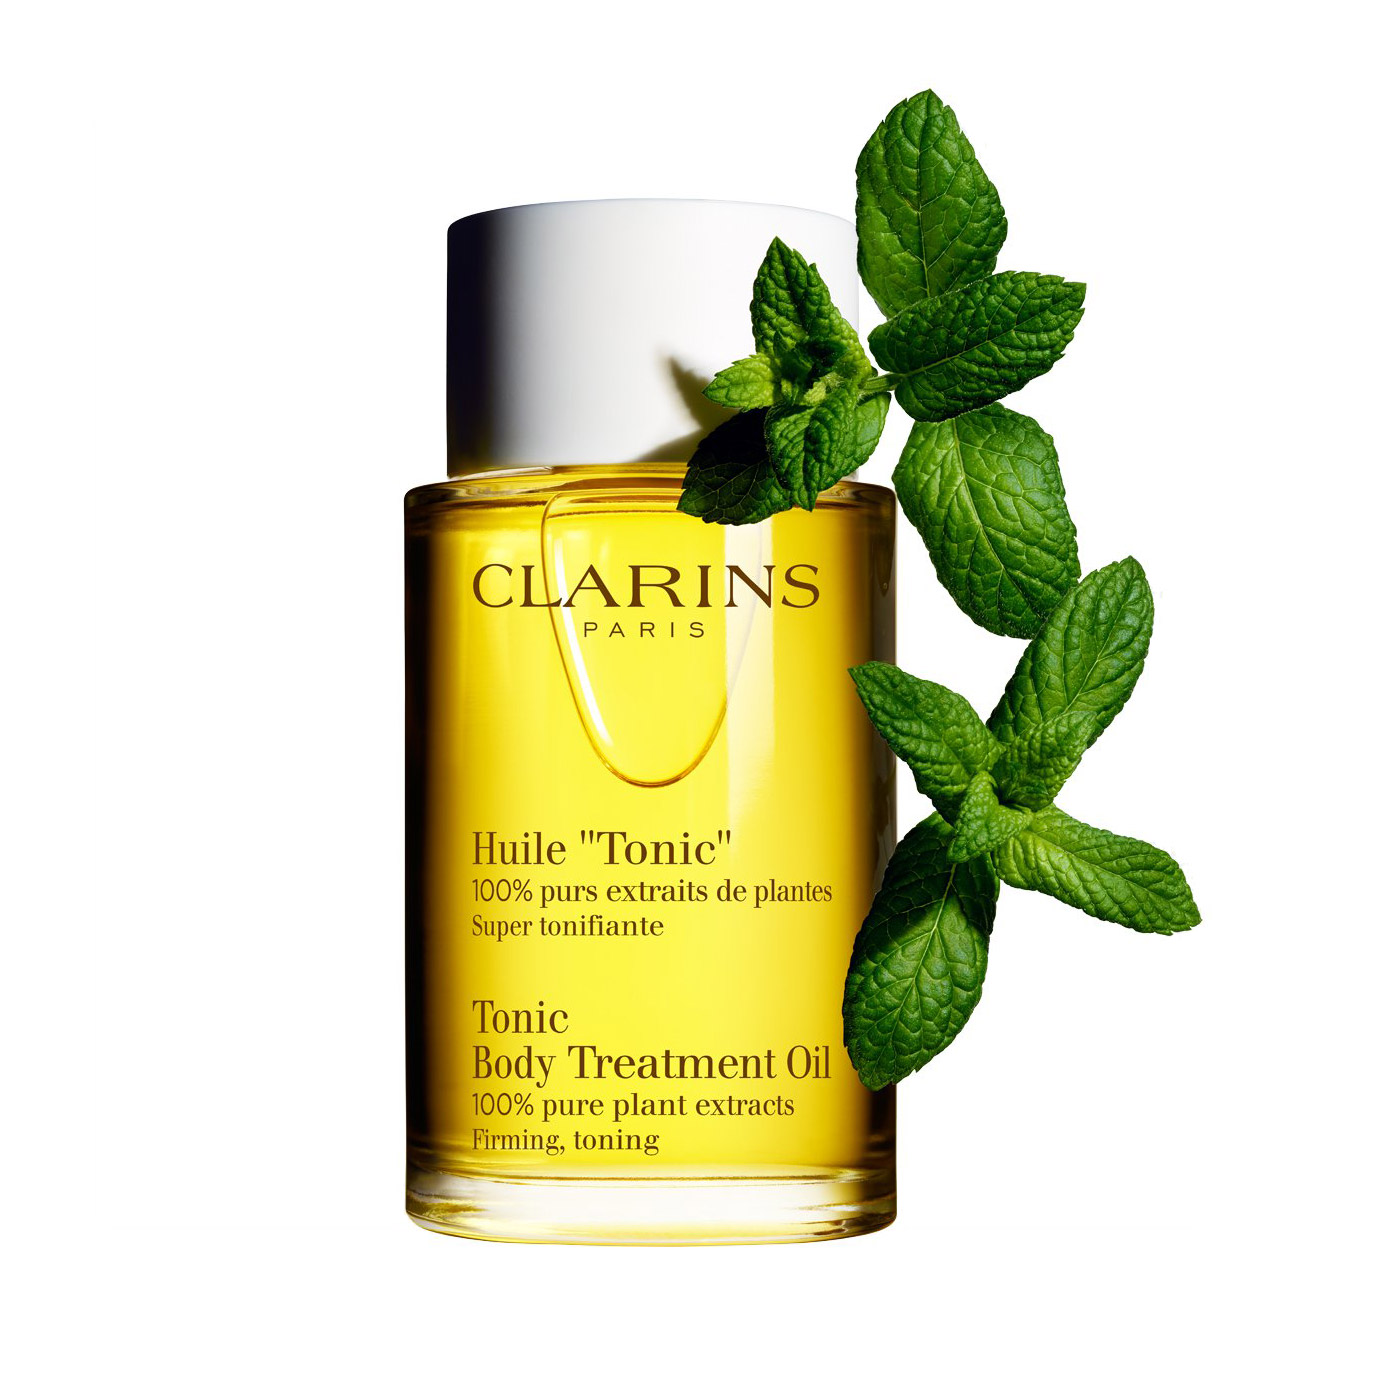 Clarins Tonic Body Treatment Oil – Firming/Toning